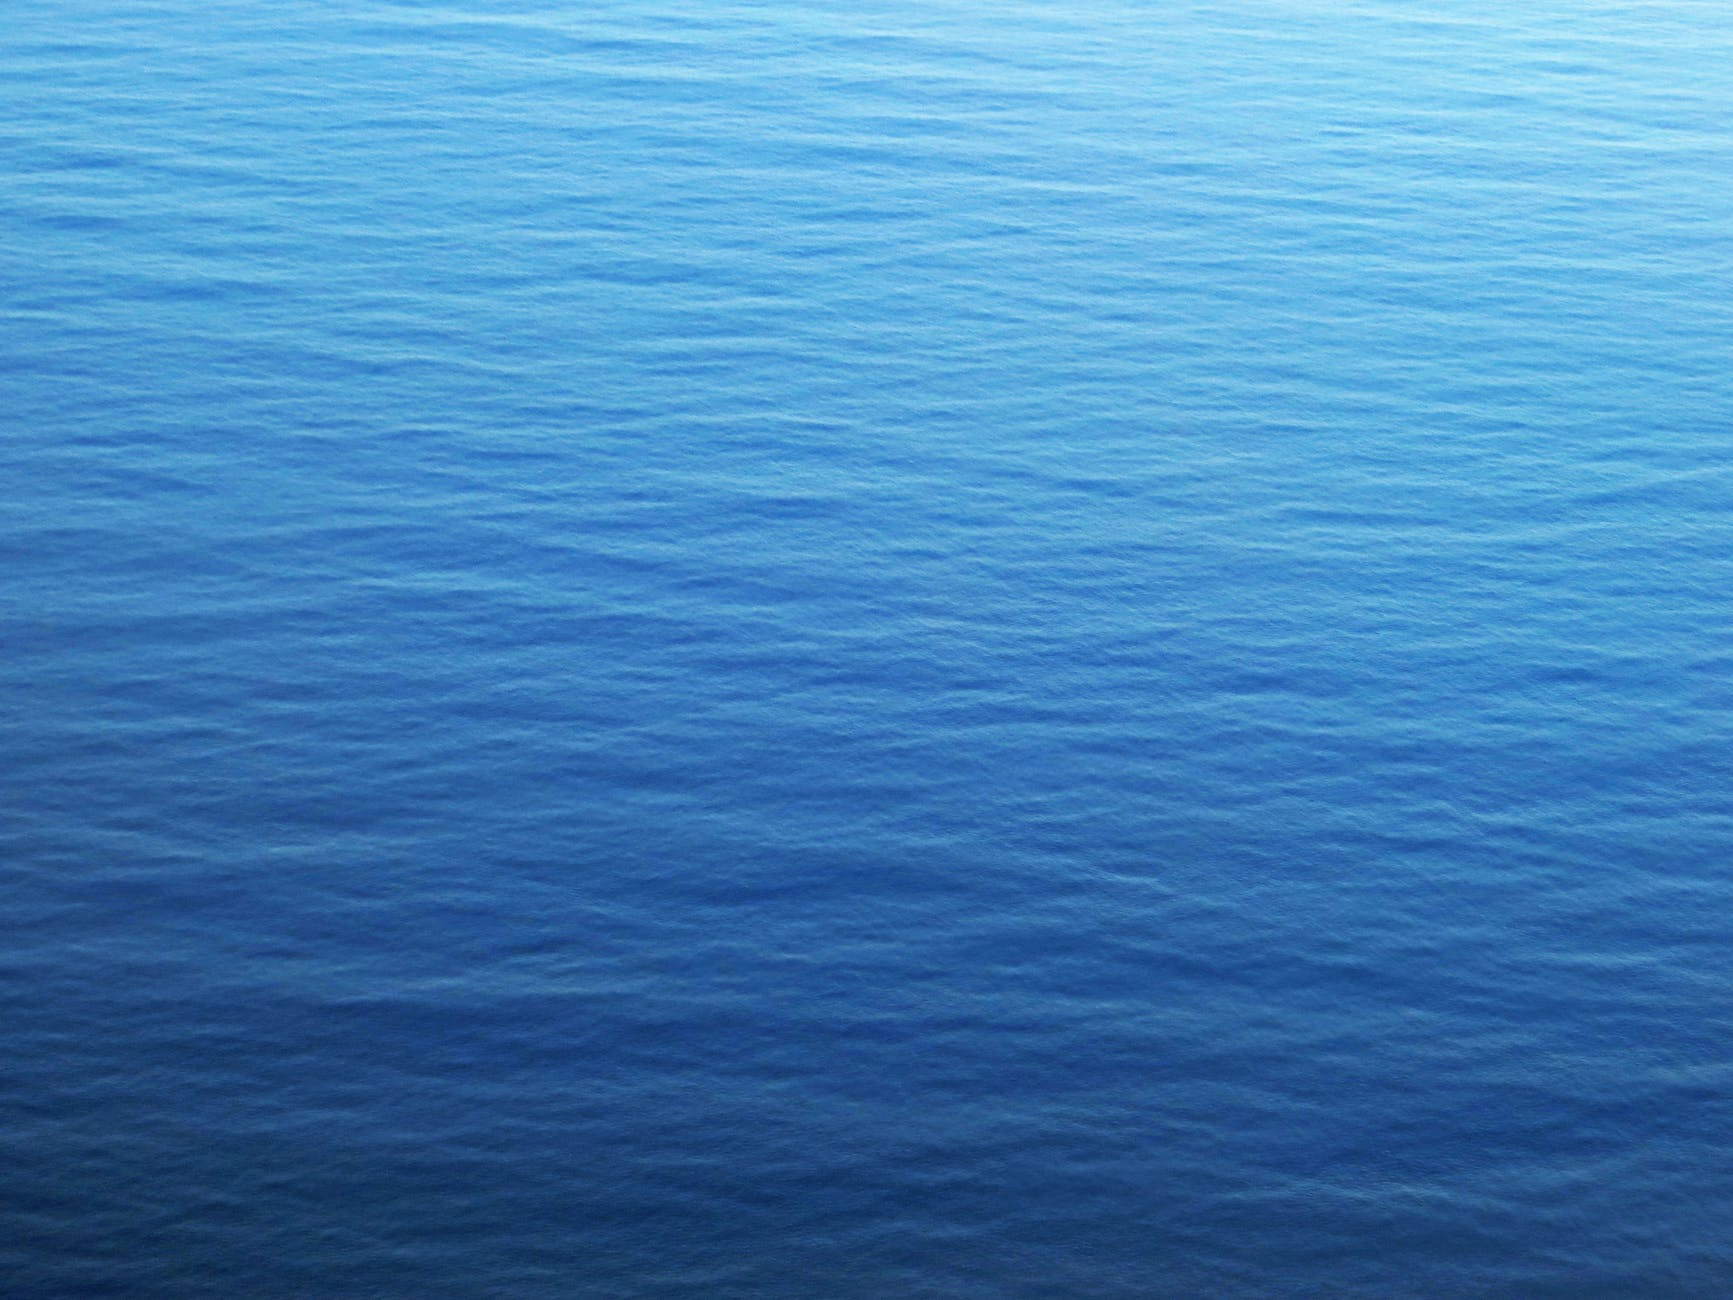 A blue, rippled body of water gradually changes to a lighter blue